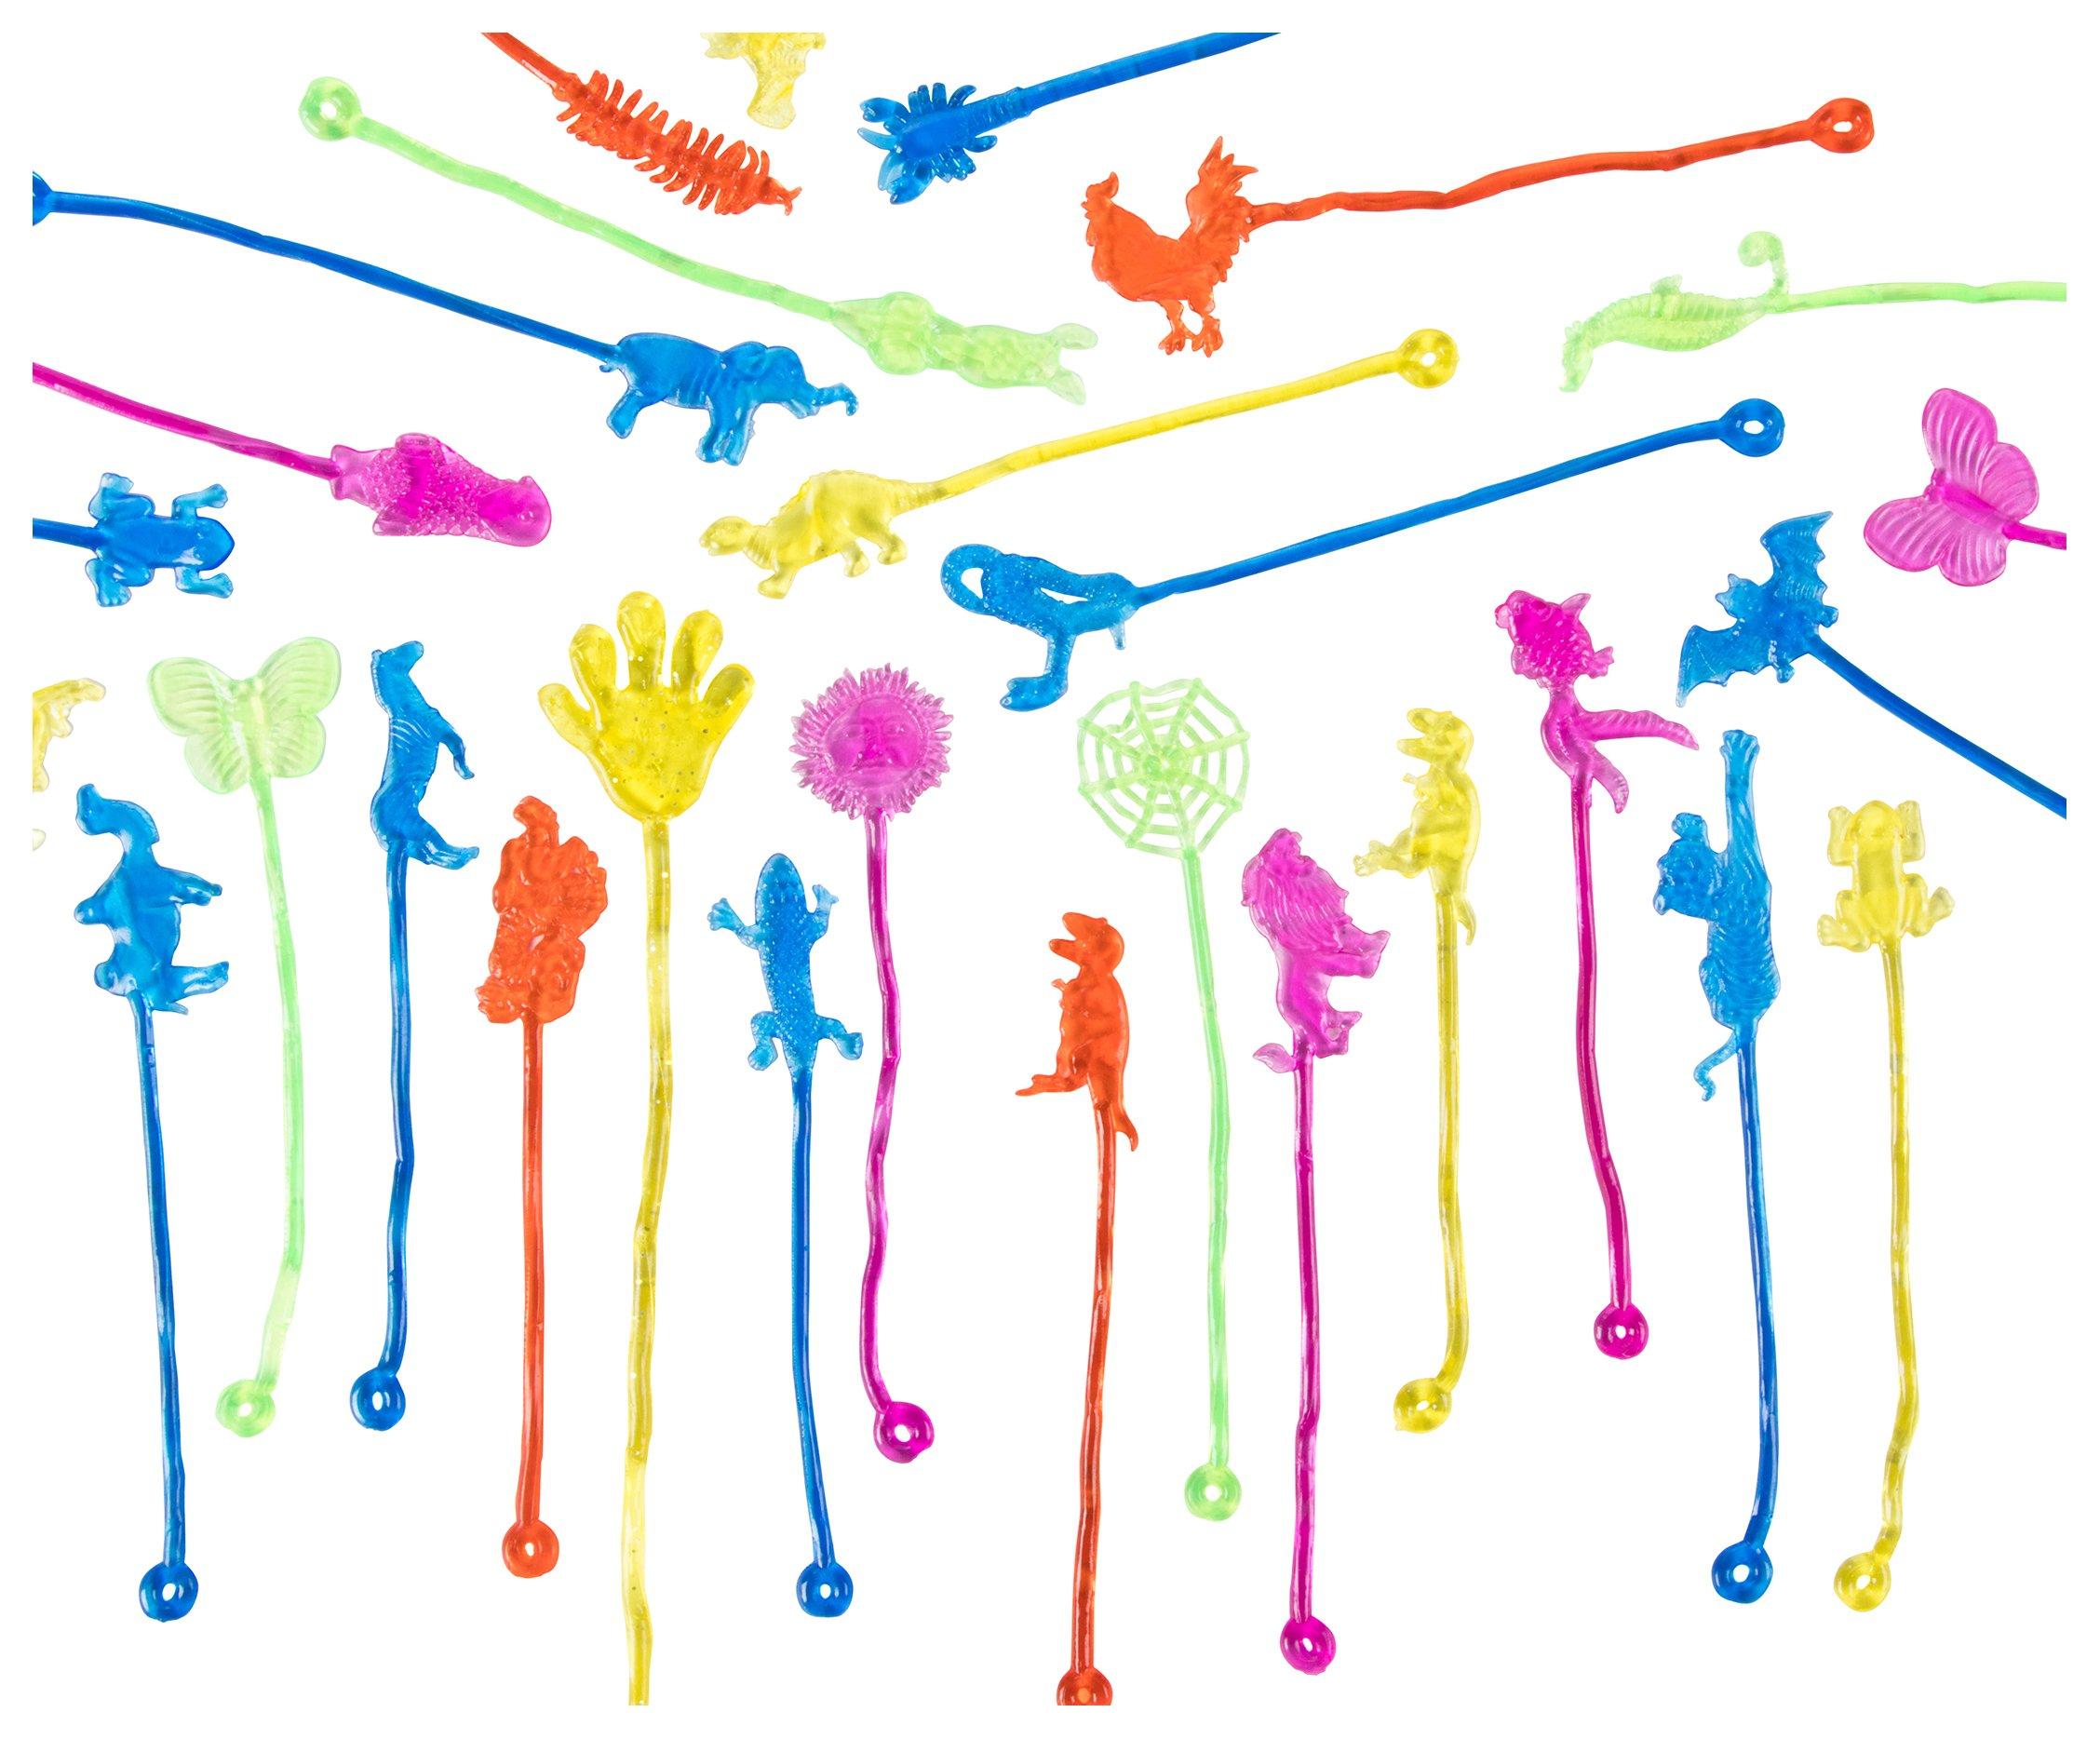 Sticky Toys - 100-Pack Stretchy Toys for Kids Birthday Party Favors, Carnival Prizes, Assorted Animal Shapes, Multicolored